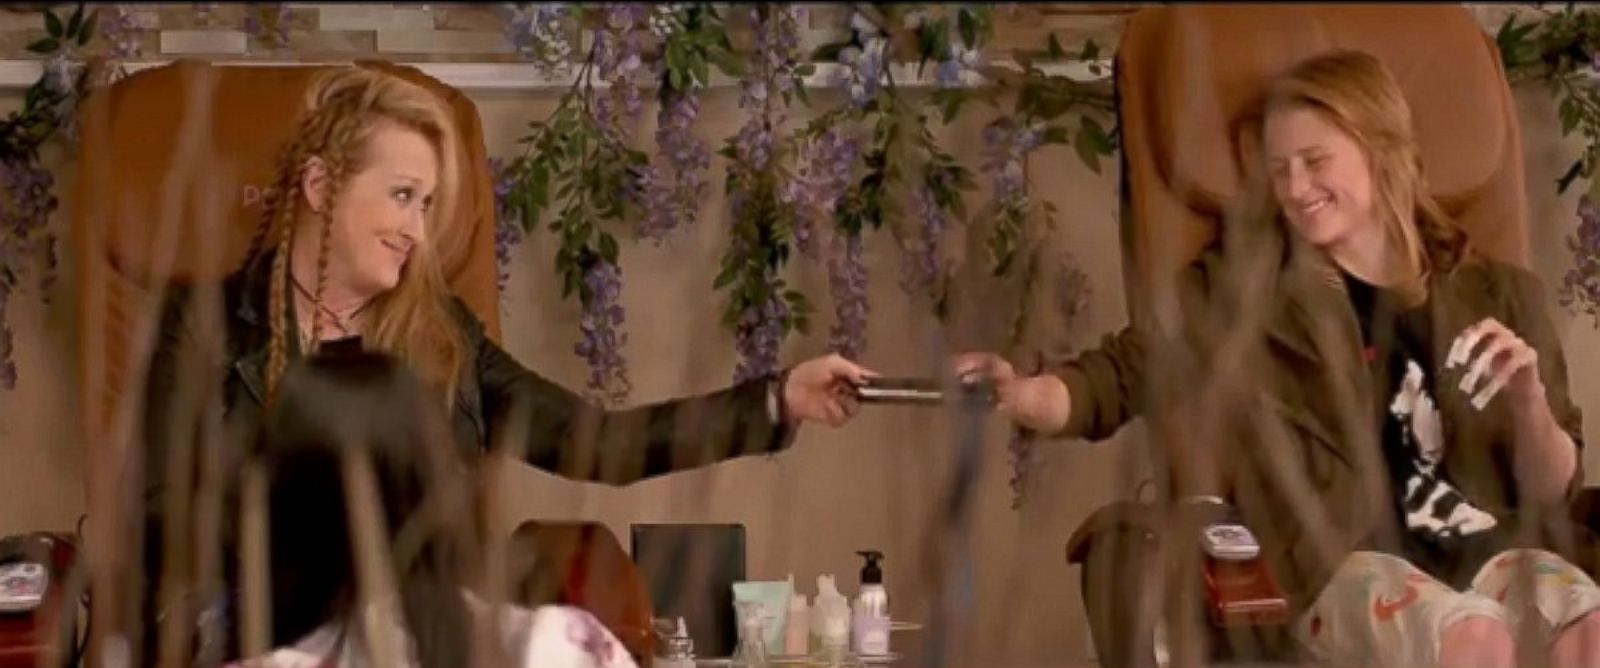 """PHOTO: Meryl Streep and Mamie Gummer appear in the trailer for """"Ricki and the Flash""""."""